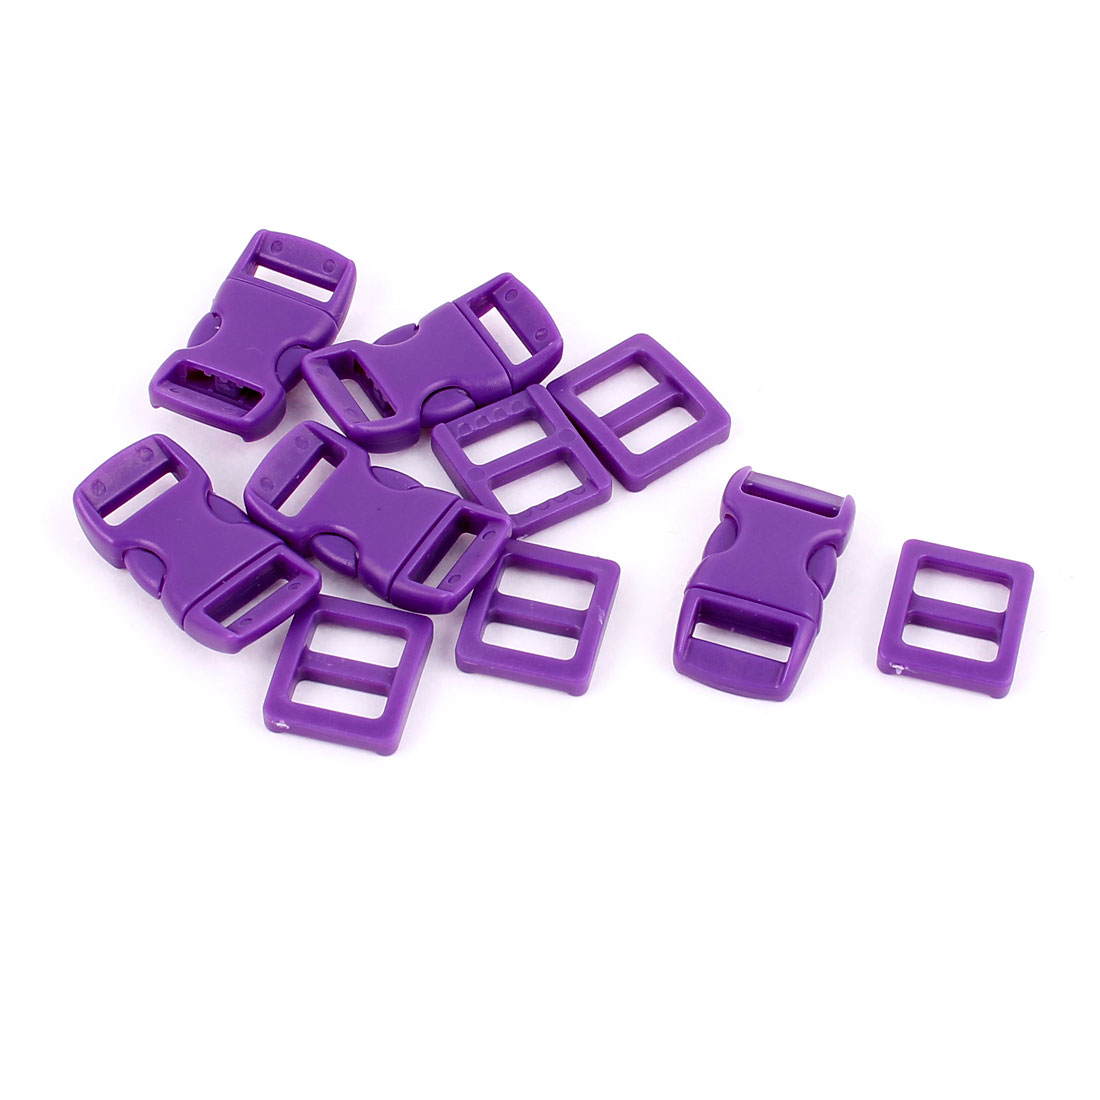 5pcs 10-11mm Webbing Strap Band Plastic Curved Clasp Side Quick Release Buckles Purple